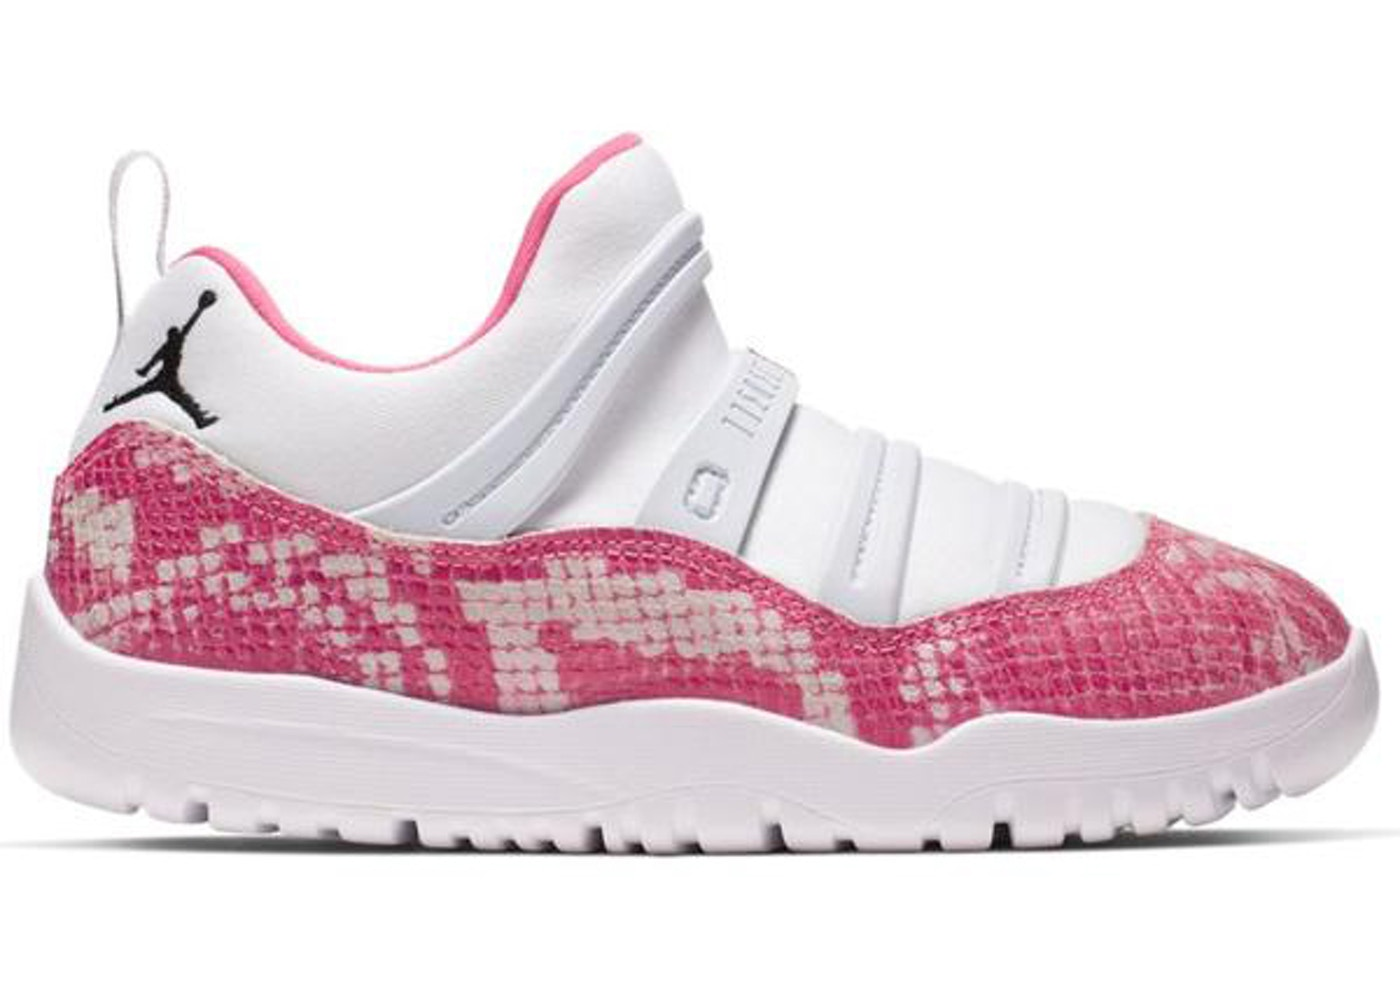 397b59658c0 Jordan 11 Retro Little Flex Snake Watermelon (PS). Snake Watermelon (PS)